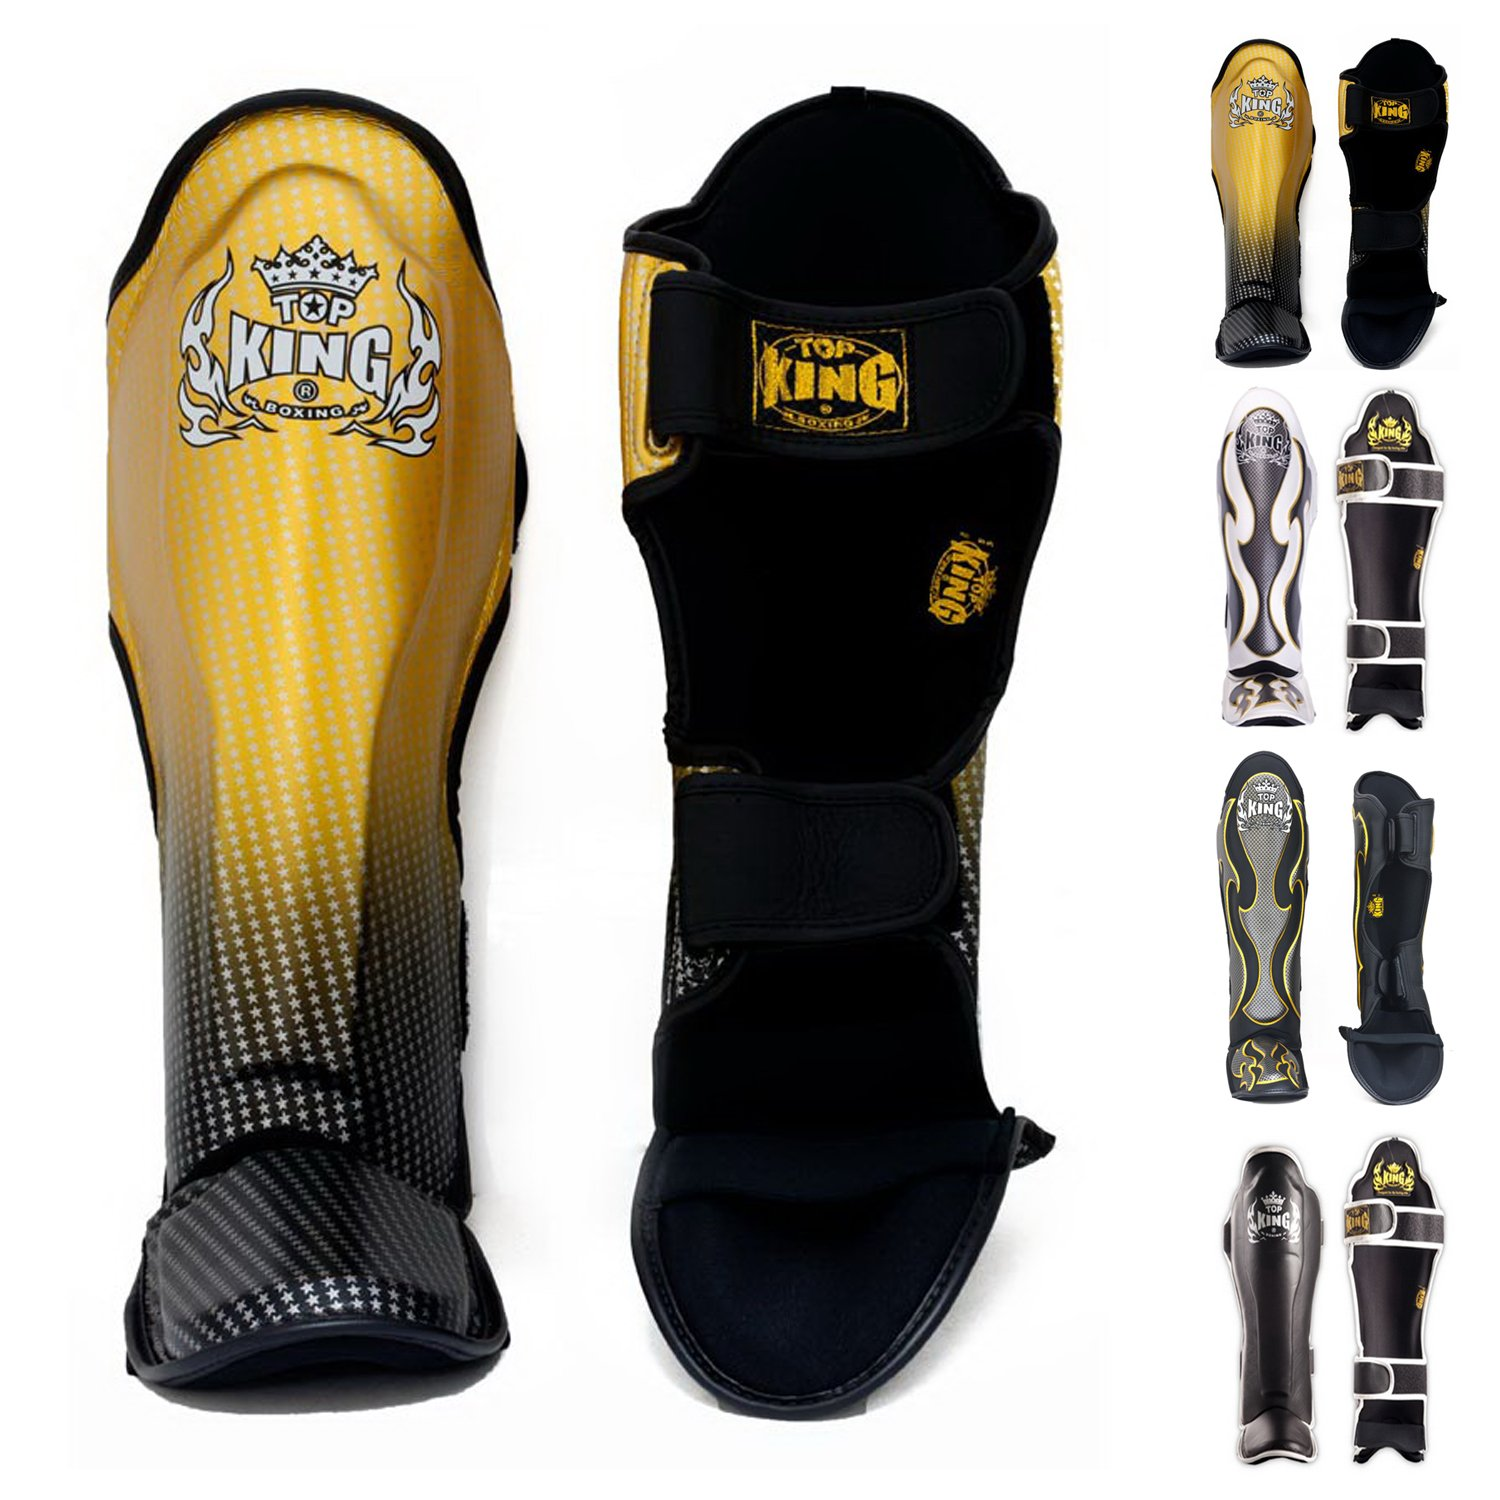 Top King Shin Guards - Muay Thai Top King Shin Guard Protector Empower Creativity Superstar